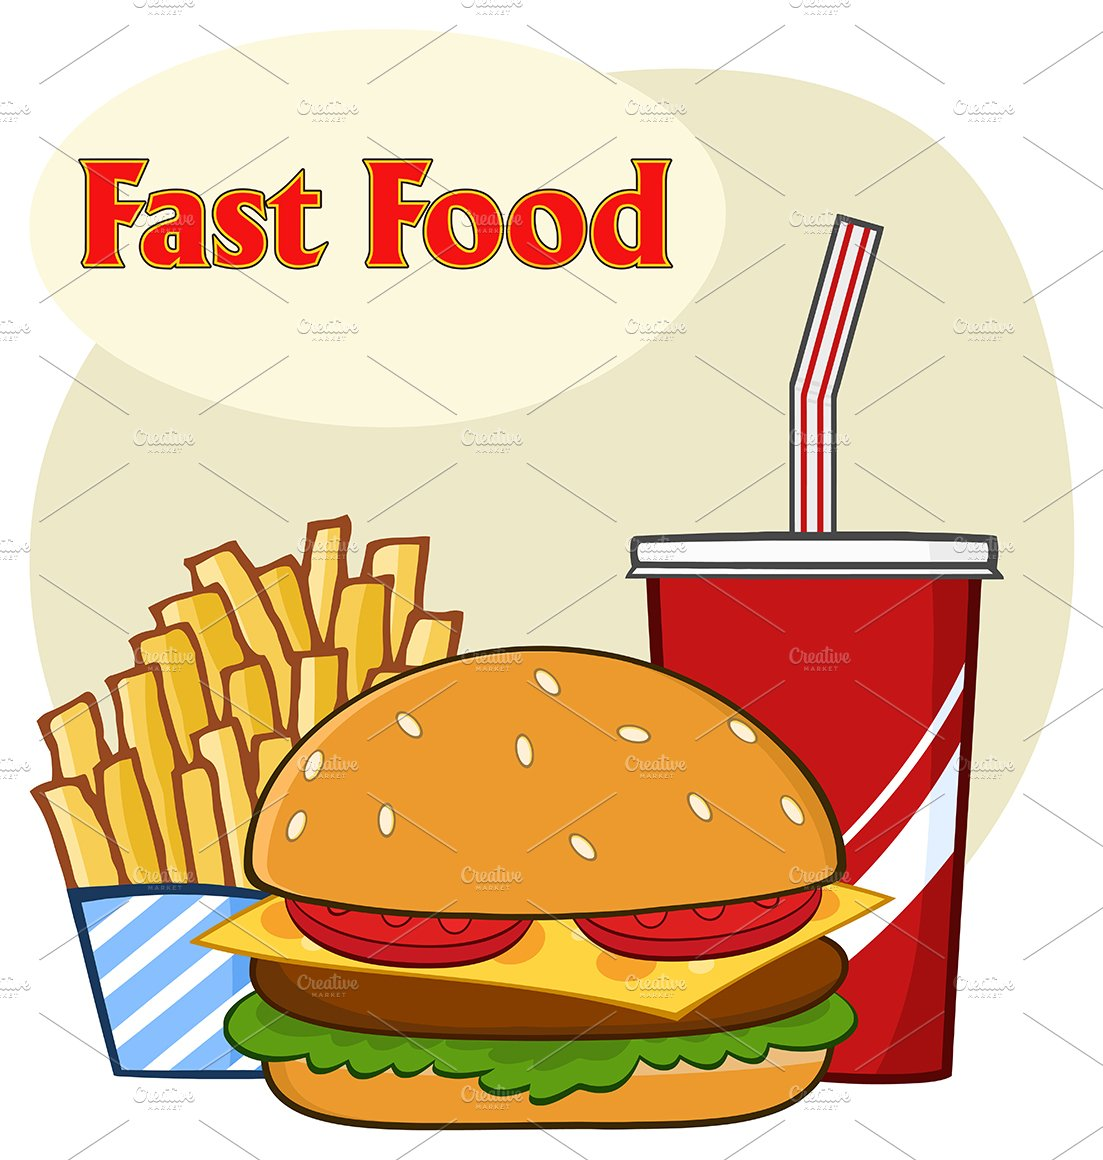 Fast Food Cartoon With Text ~ Illustrations ~ Creative Market